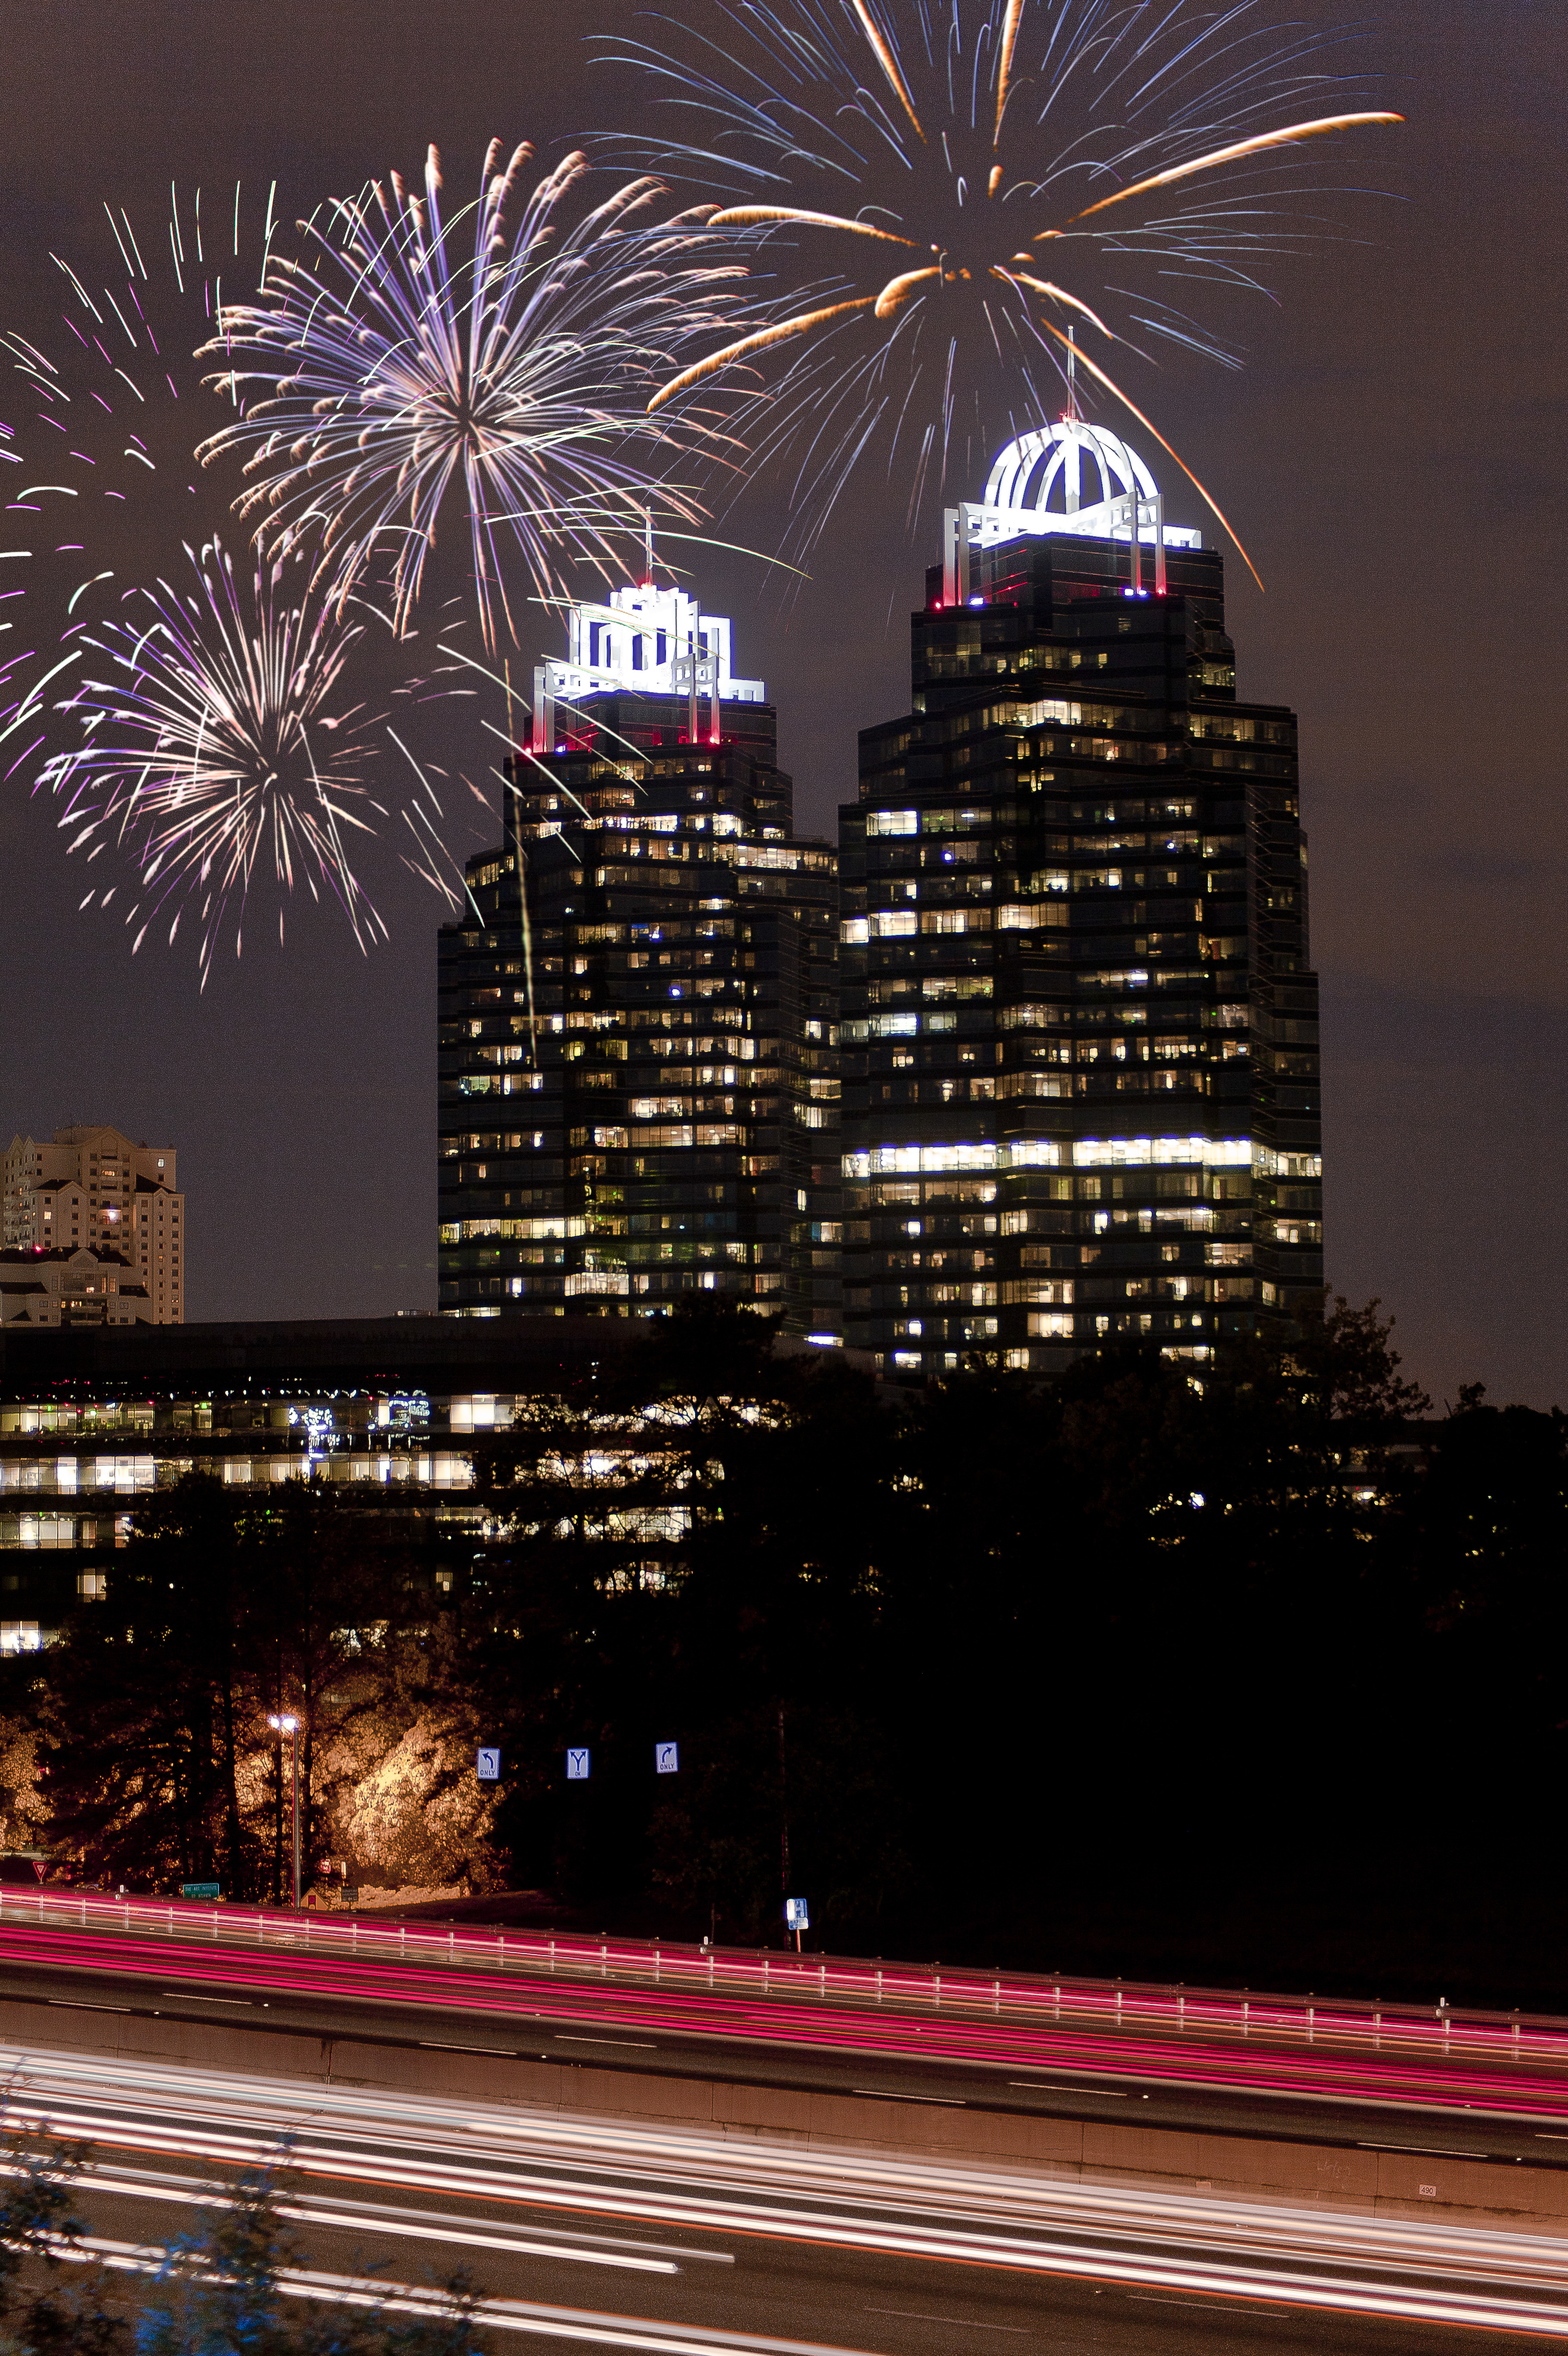 King and queen buildings wfireworks photo cred city of sandy springs